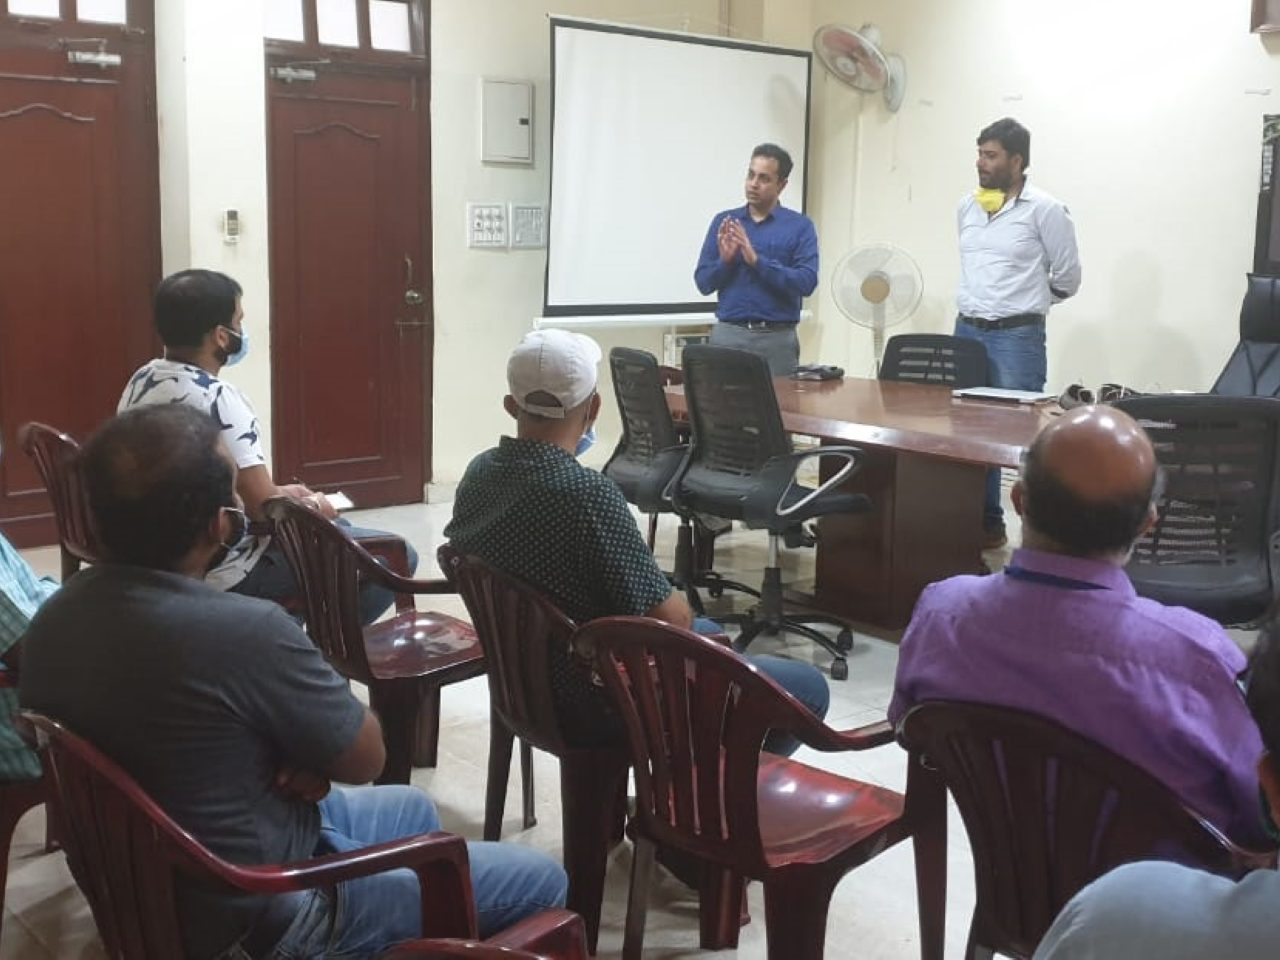 Training of officers at North Goa Collectorate to conduct community survey of COVID19 covering 100% houses from 13th April.